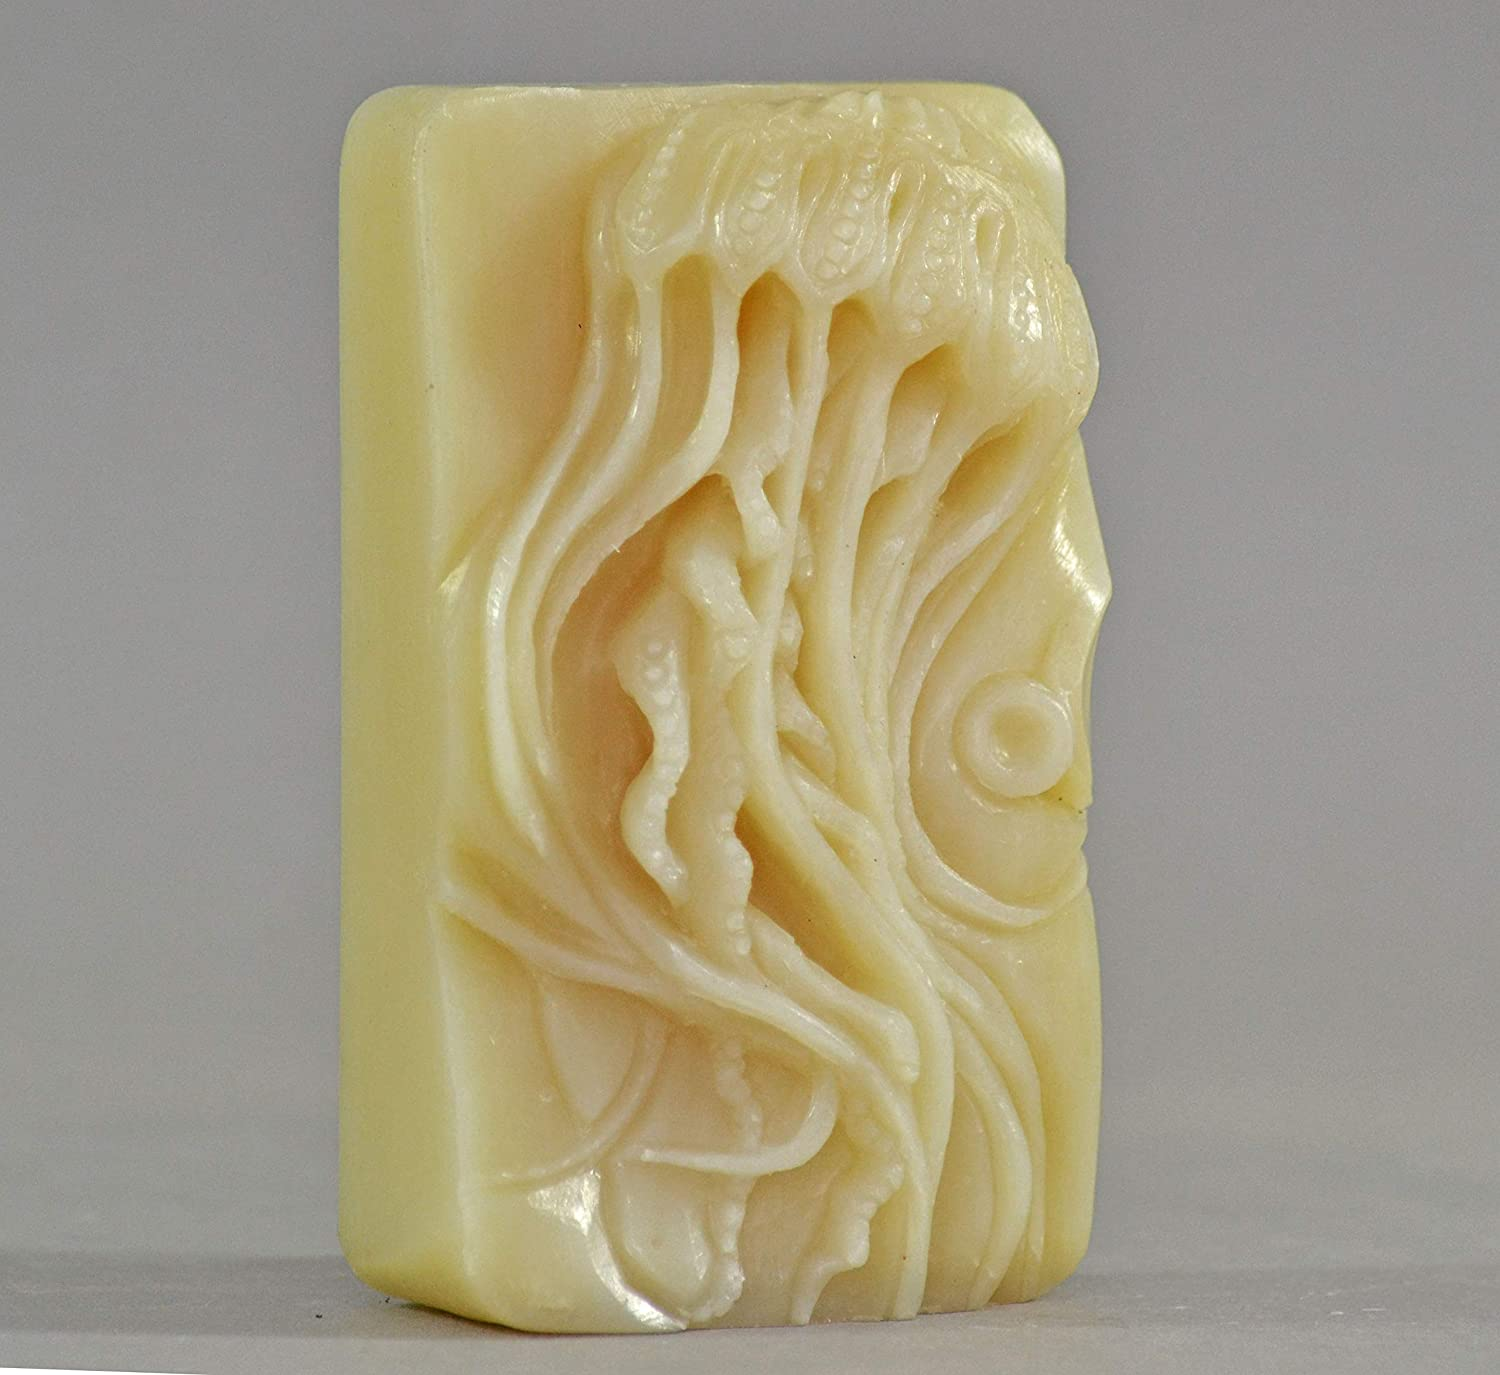 Medusa Silicone Mold SOAP Plaster Wax Resin Clay 5oz Jellyfish